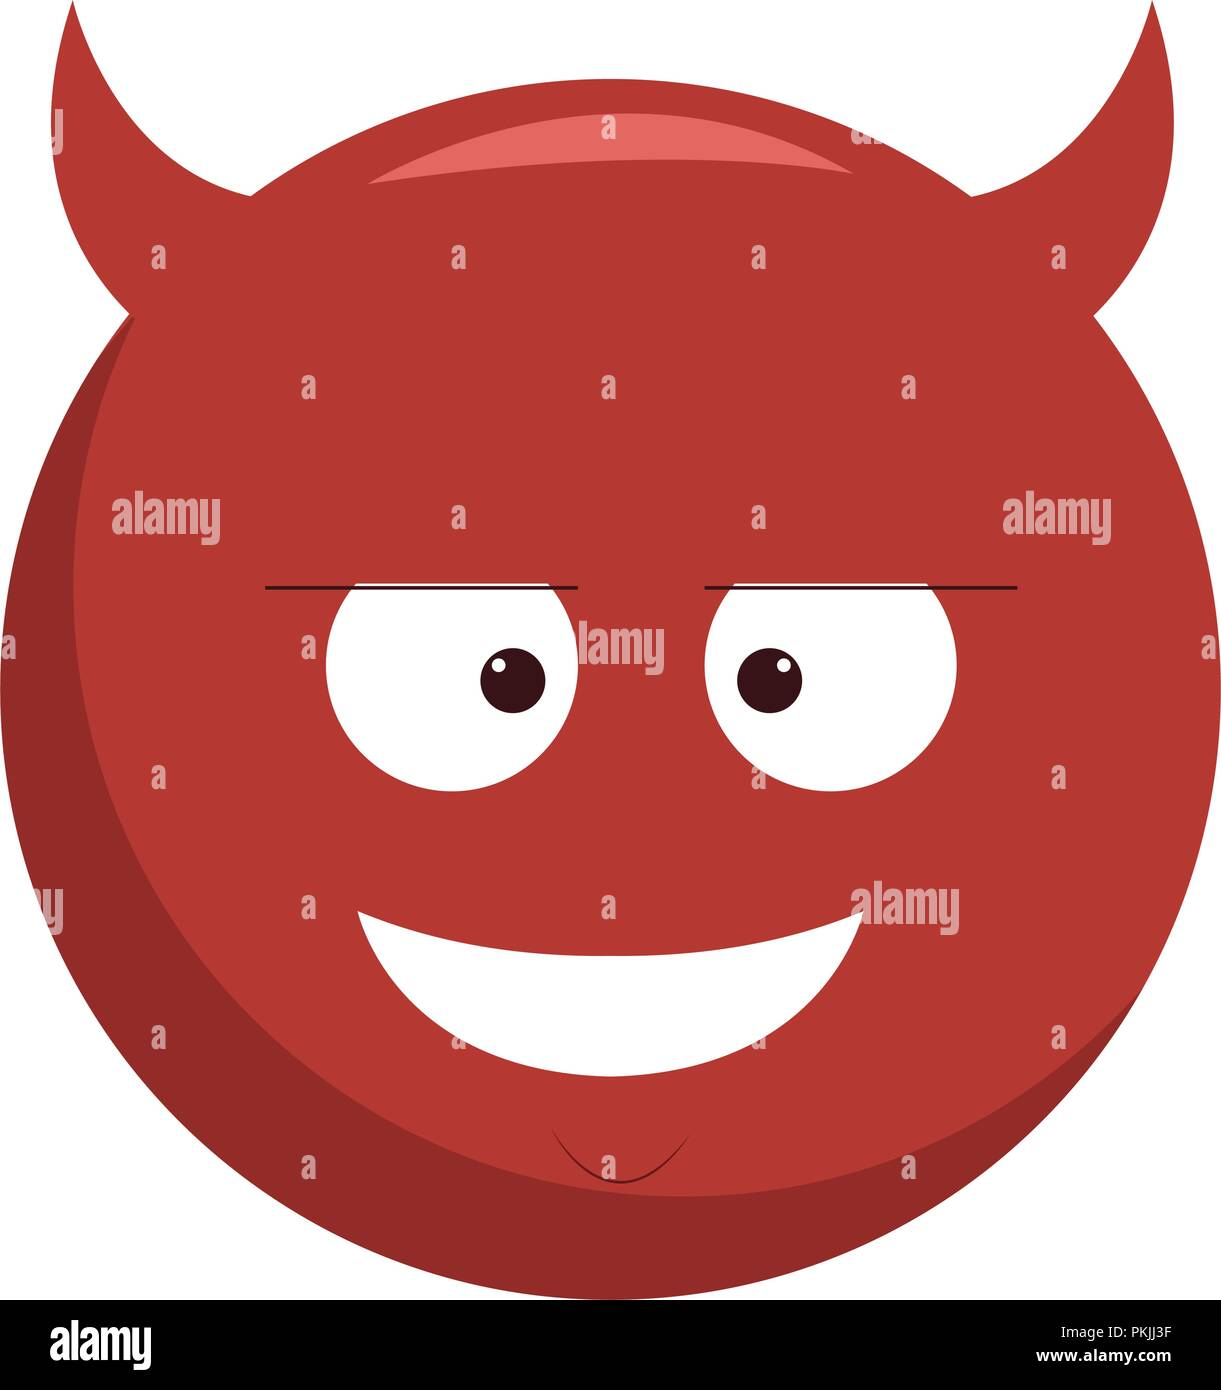 Emoticone Chat Diable Image Vectorielle Stock Alamy